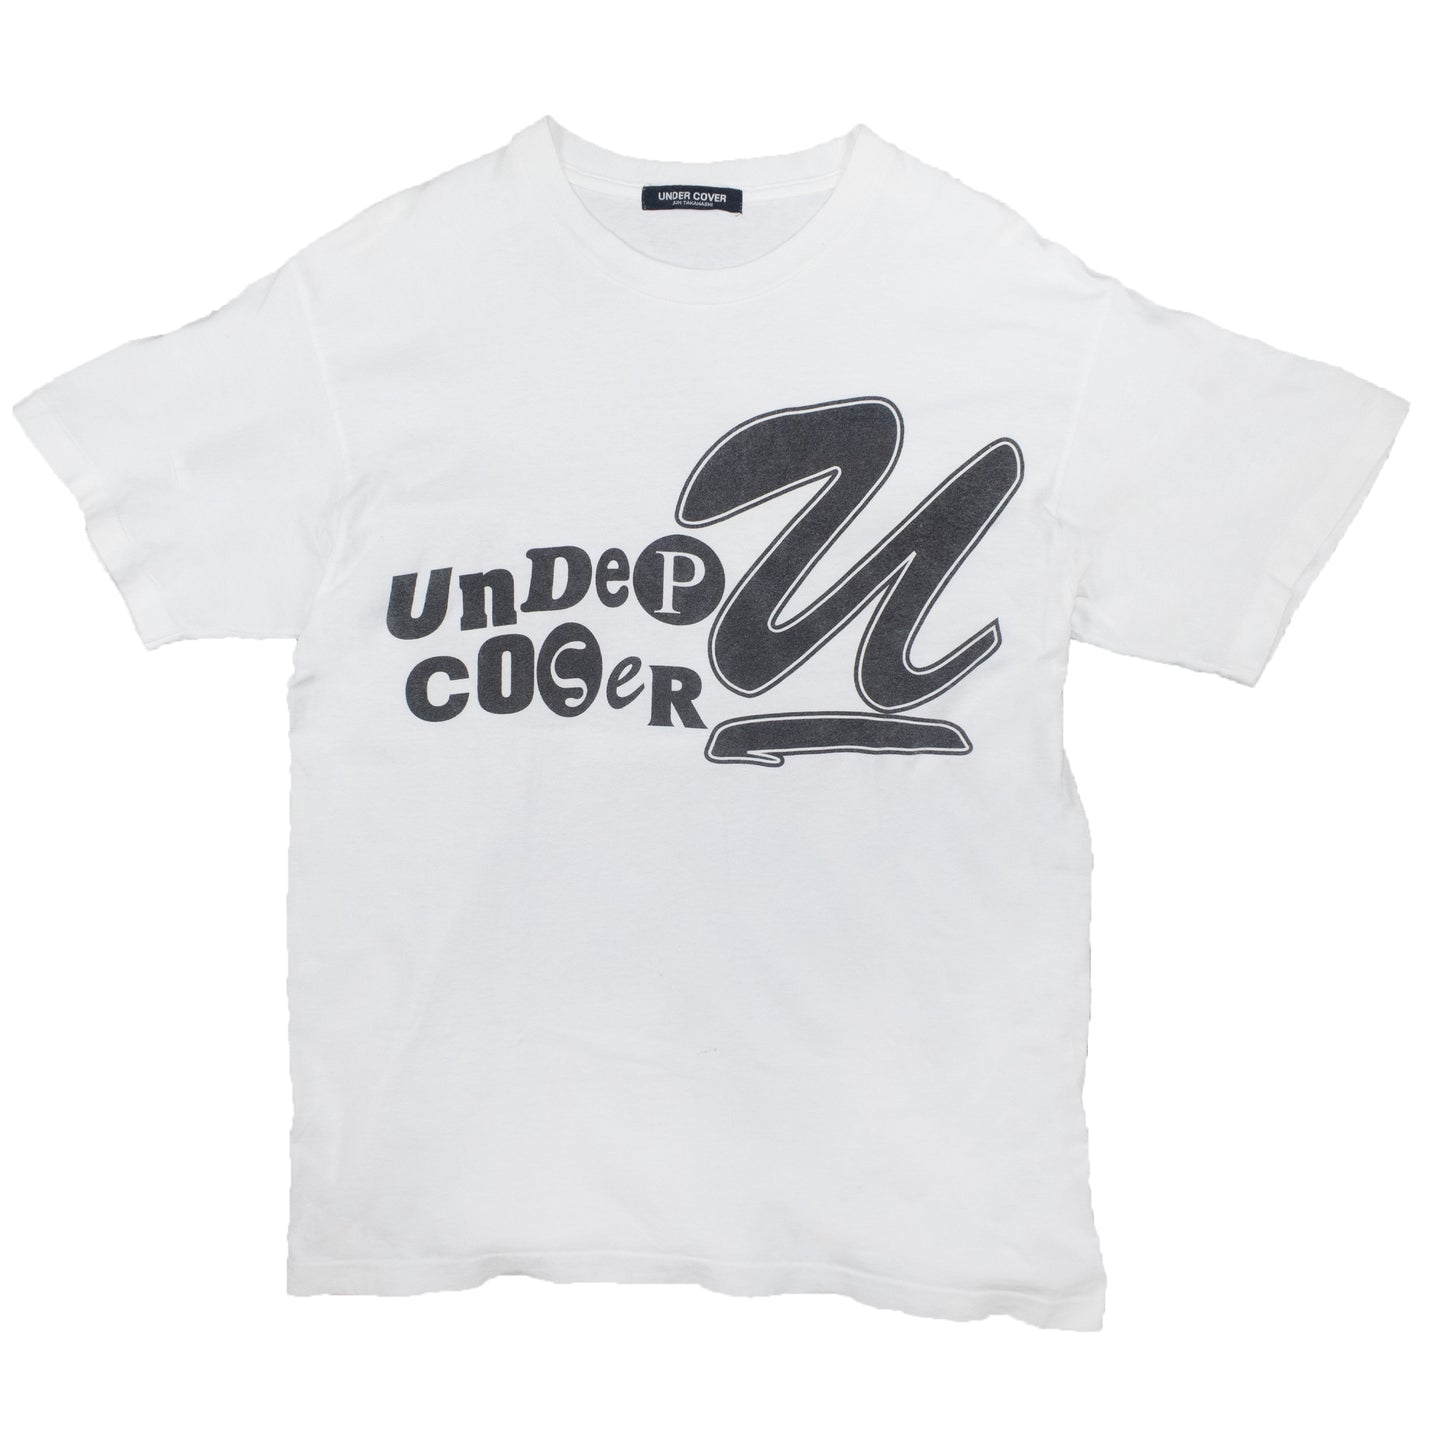 Undercover AW96 Script U logo tee <Br> Size Large